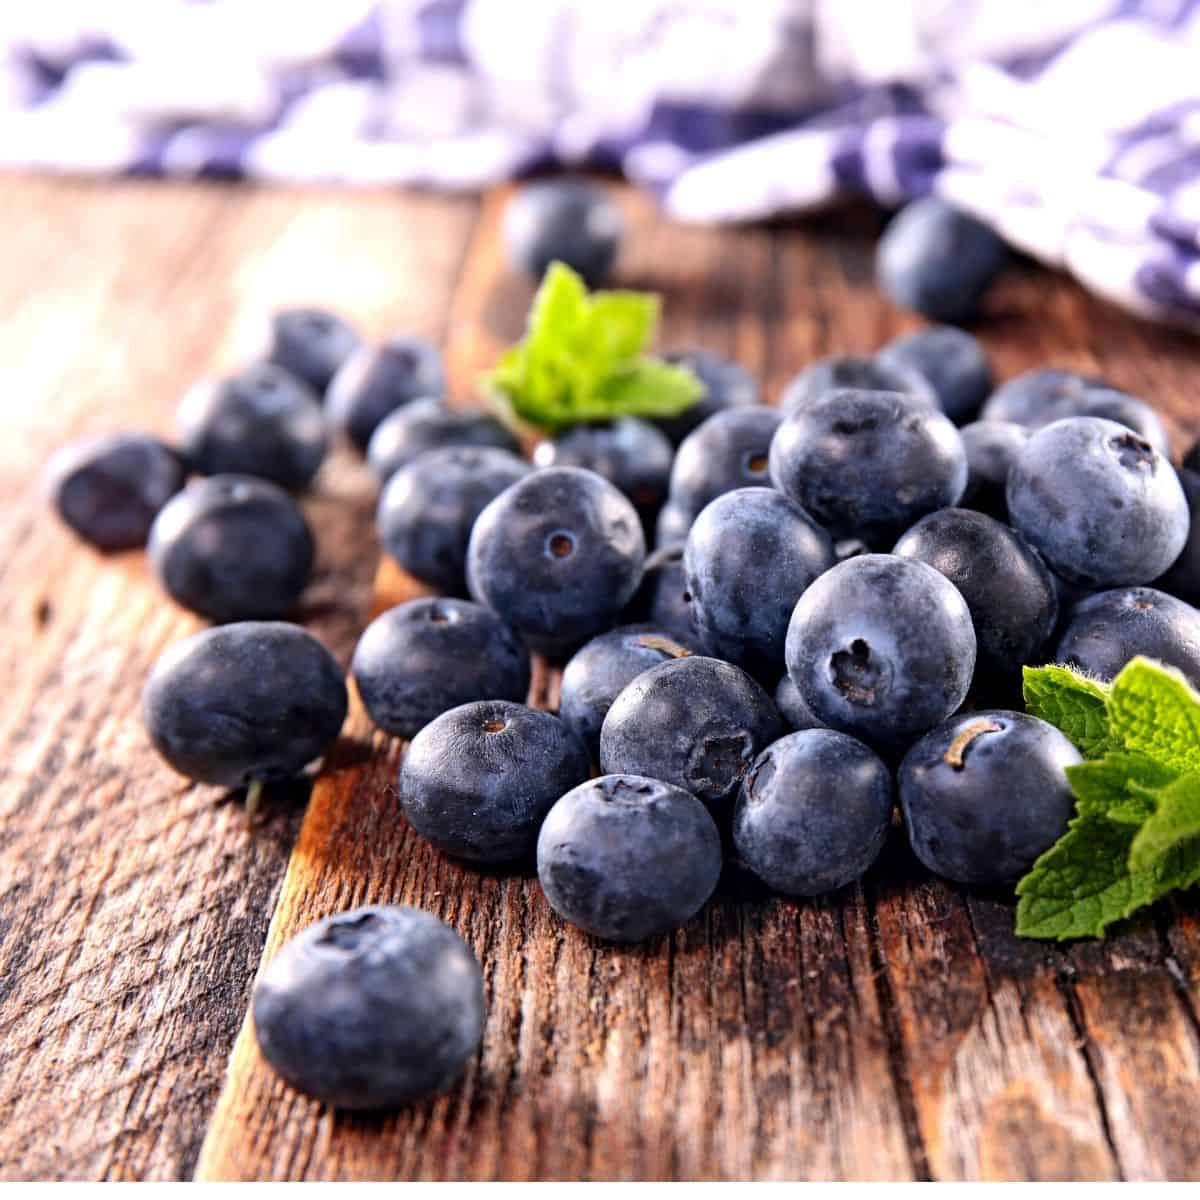 Fresh blueberries on a wooden board.